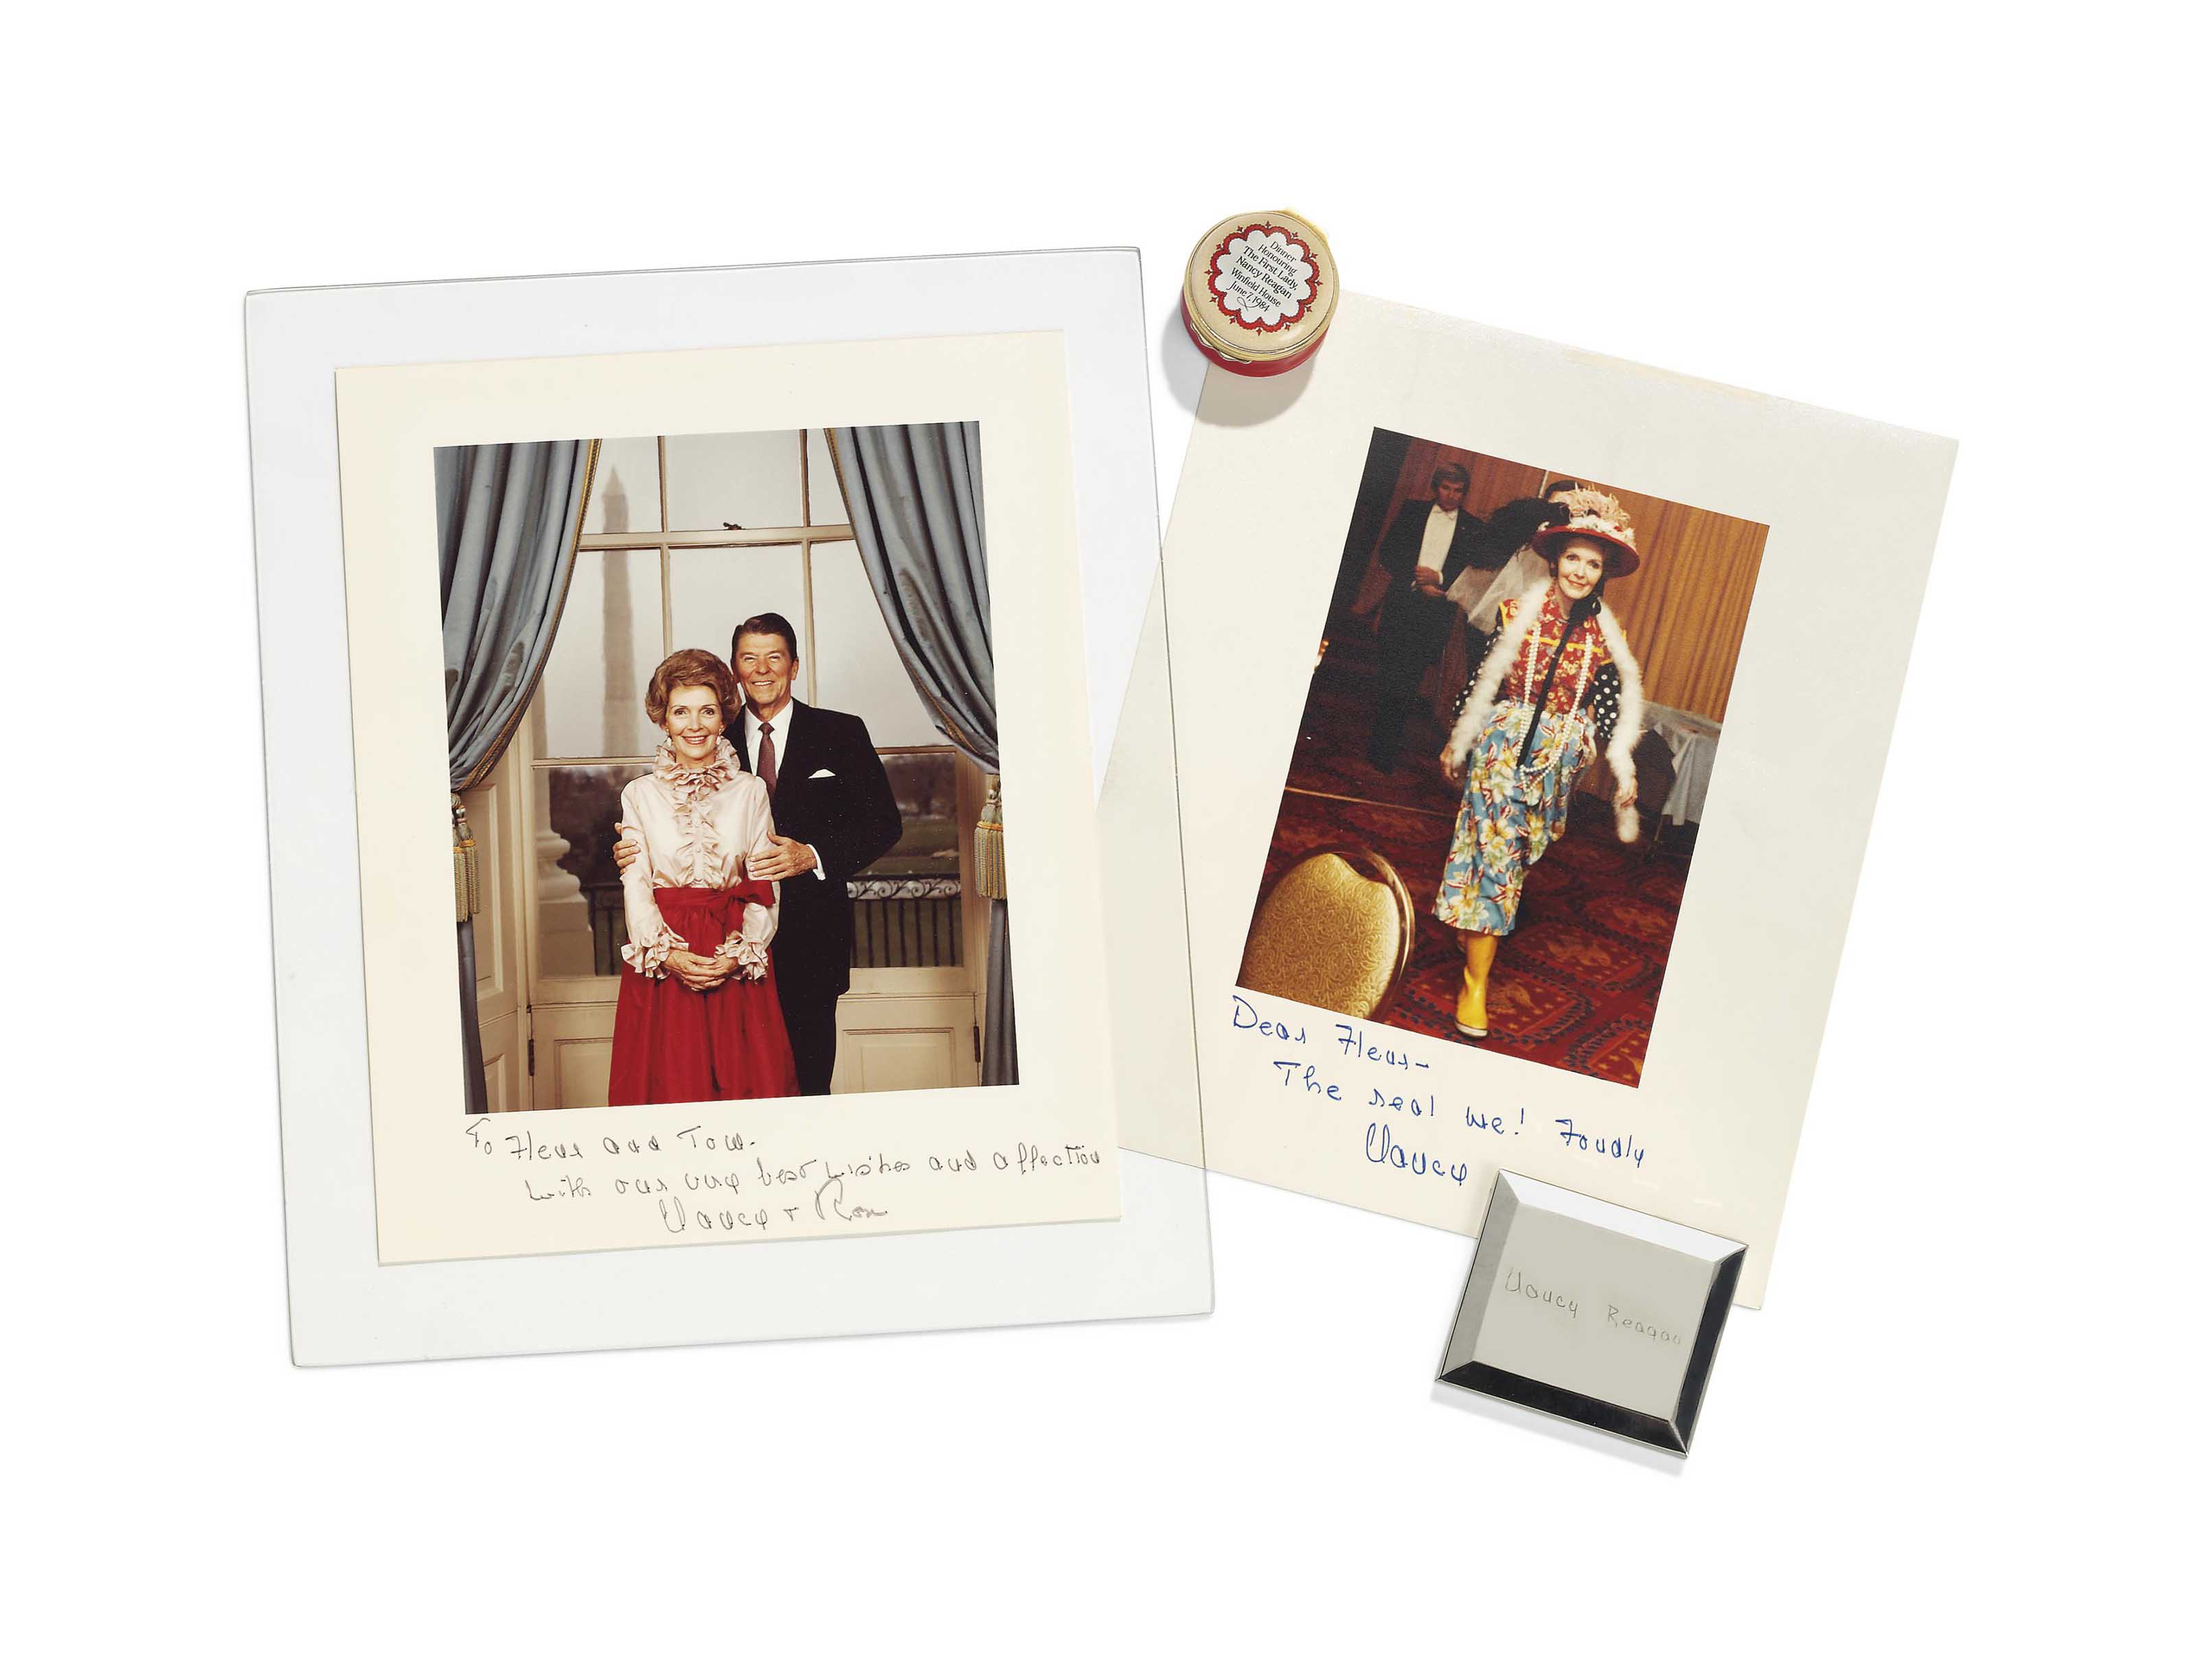 OF RONALD AND NANCY REAGAN INTEREST; TWO PHOTOGRAPHS AND AN AMERICAN SILVERED METAL COMPACT